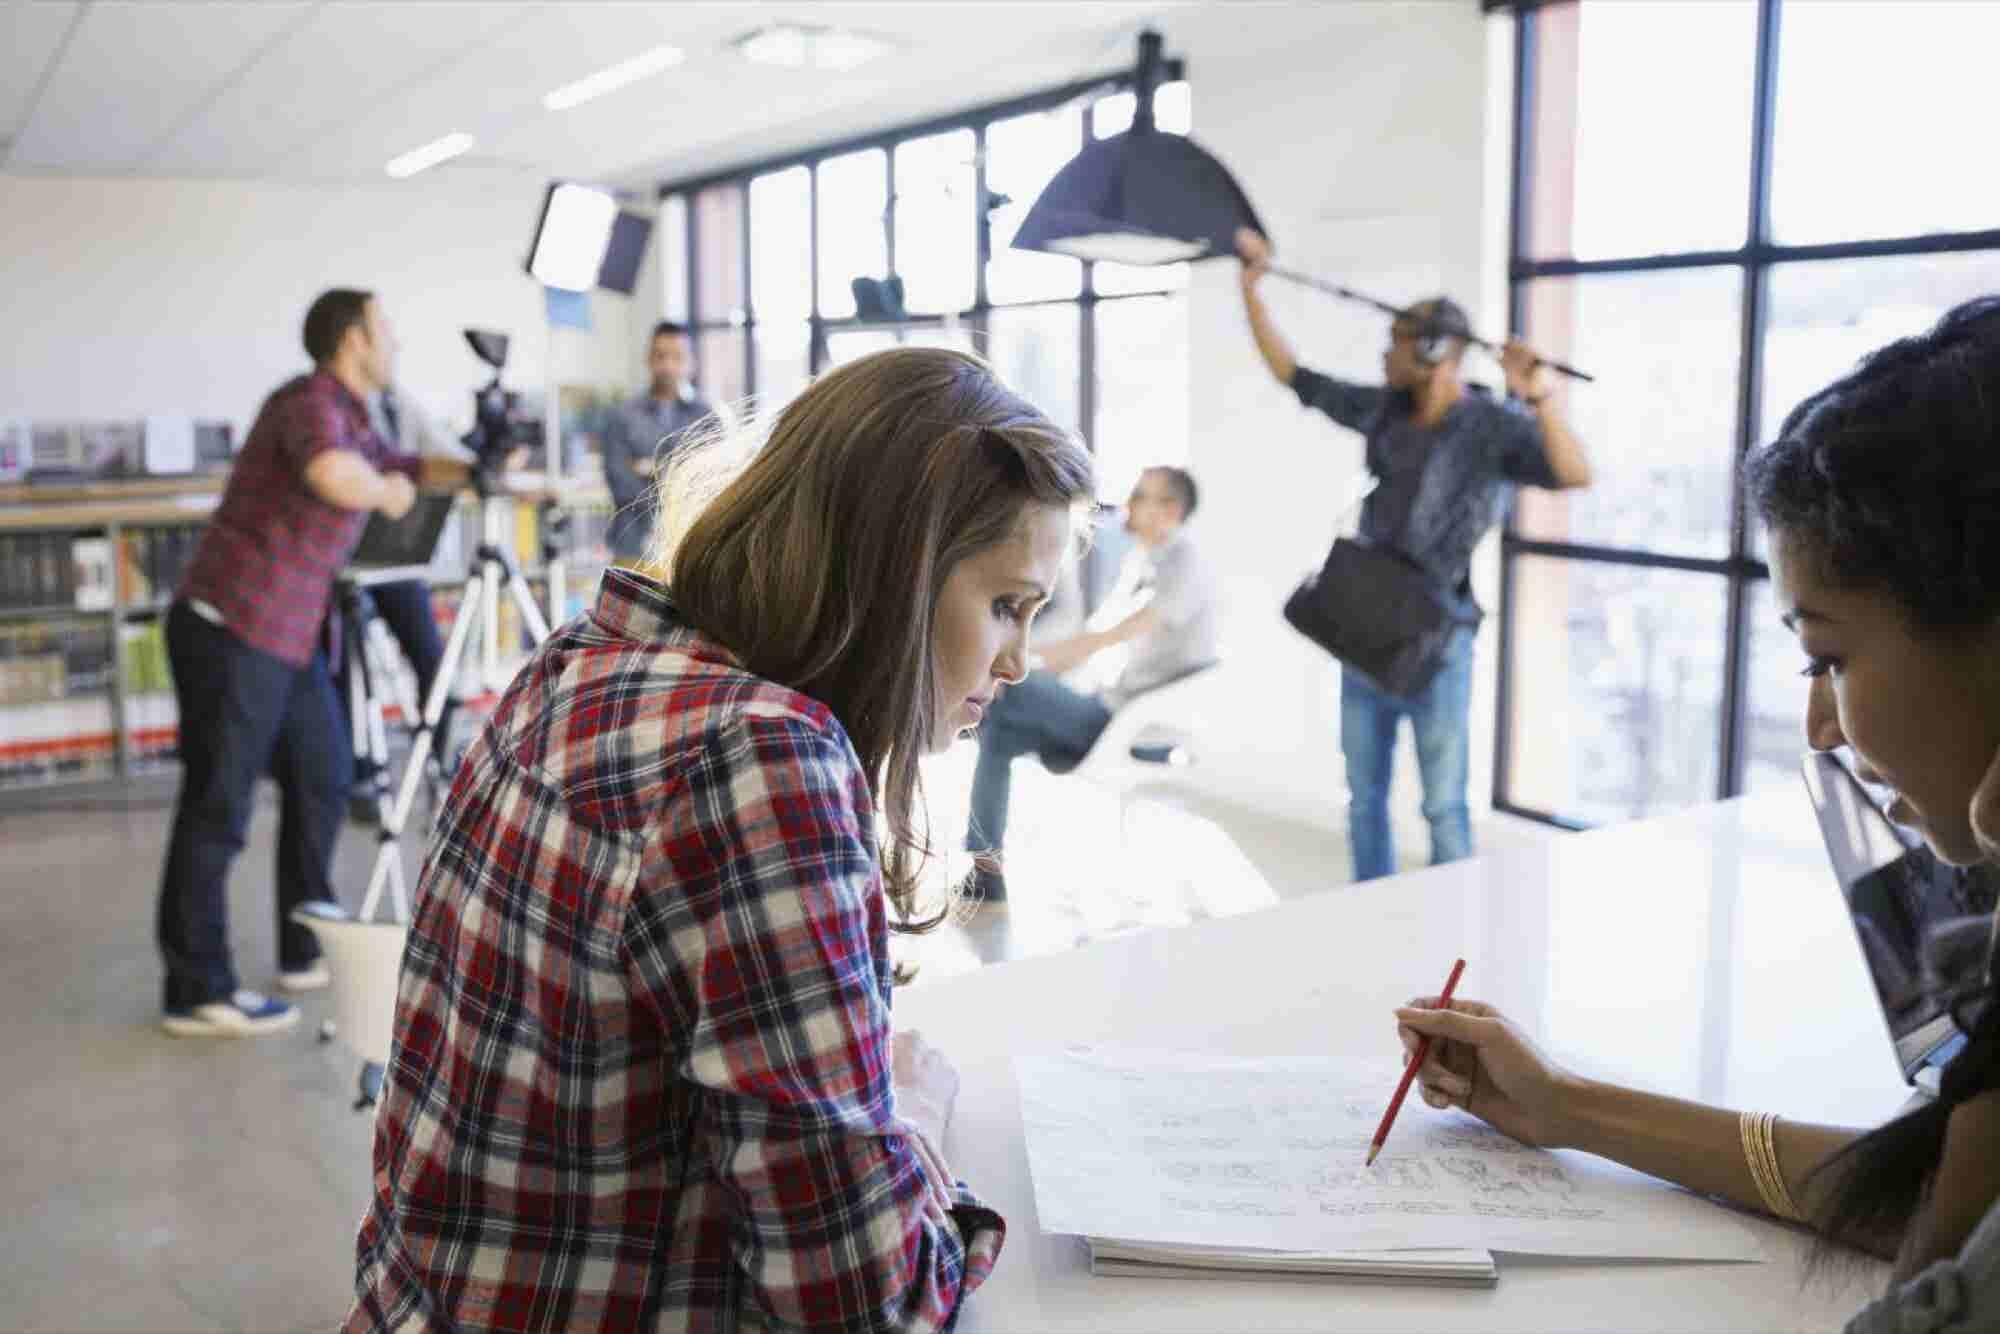 3 Ways to Master the One Thing About Video That Entrepreneurs Don't Understand: Distribution